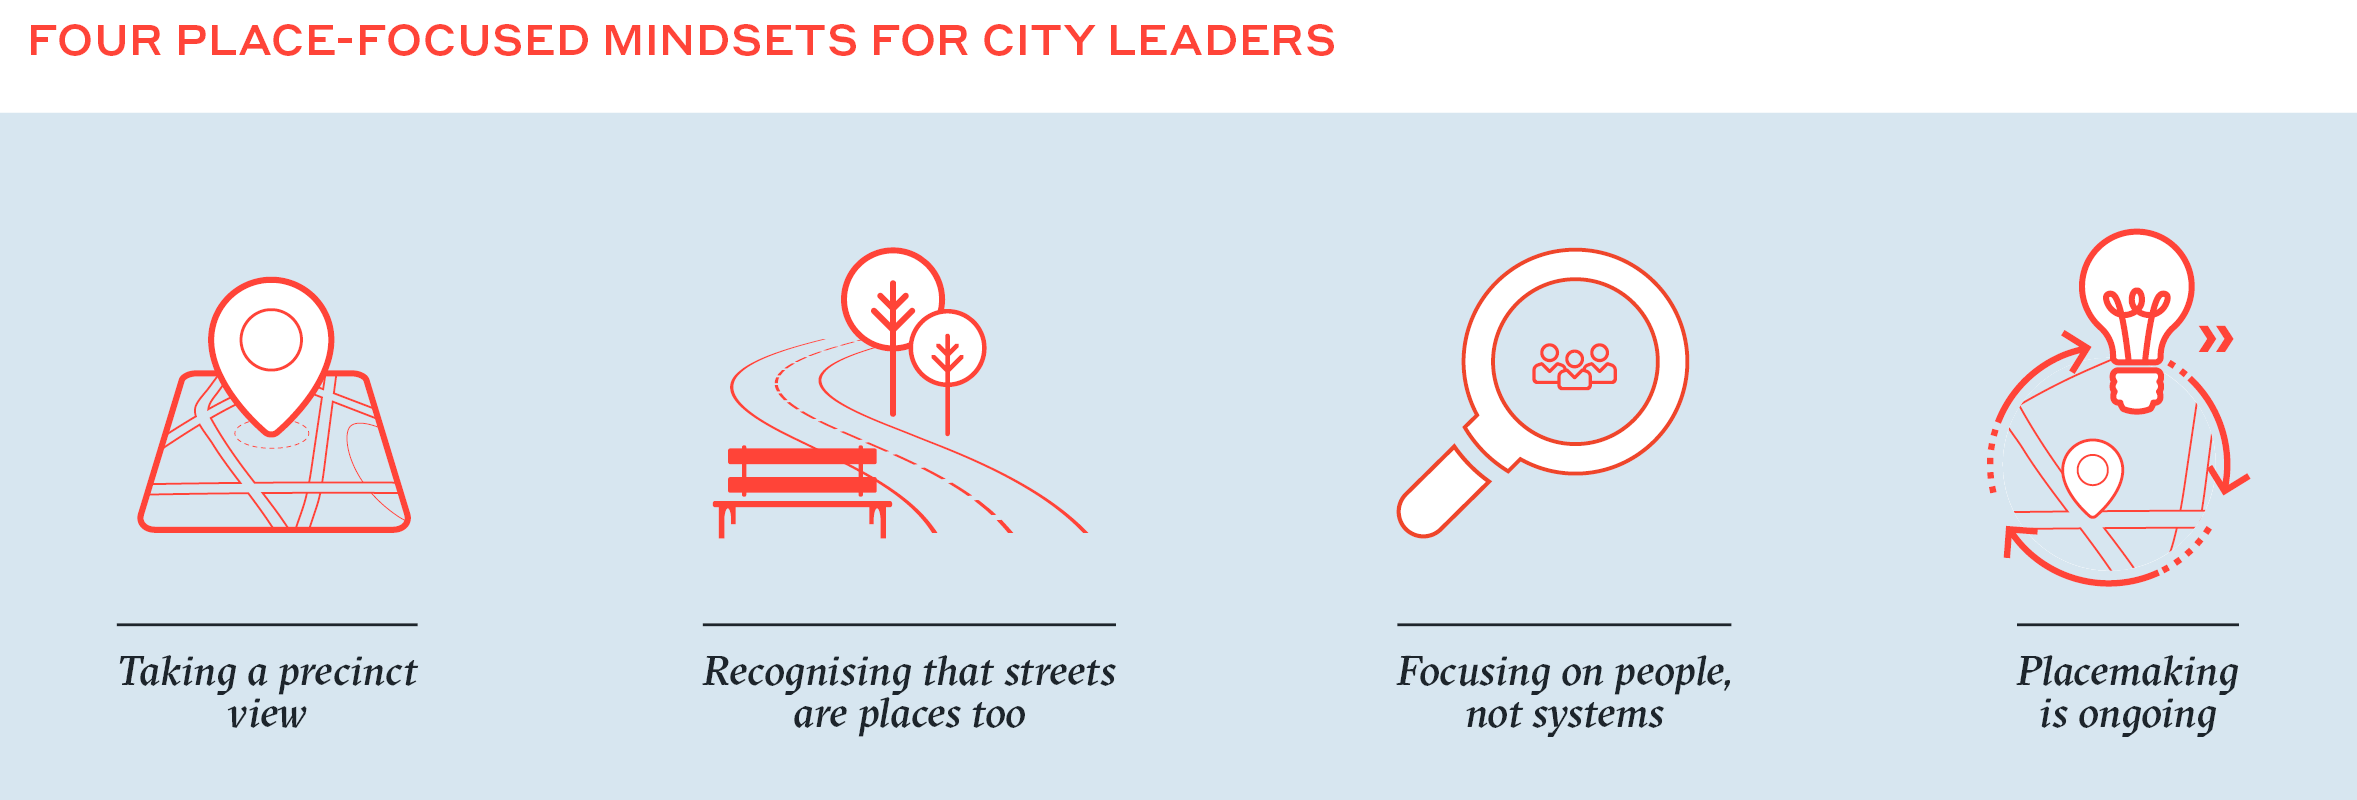 Four place-focused mindsets for city leaders